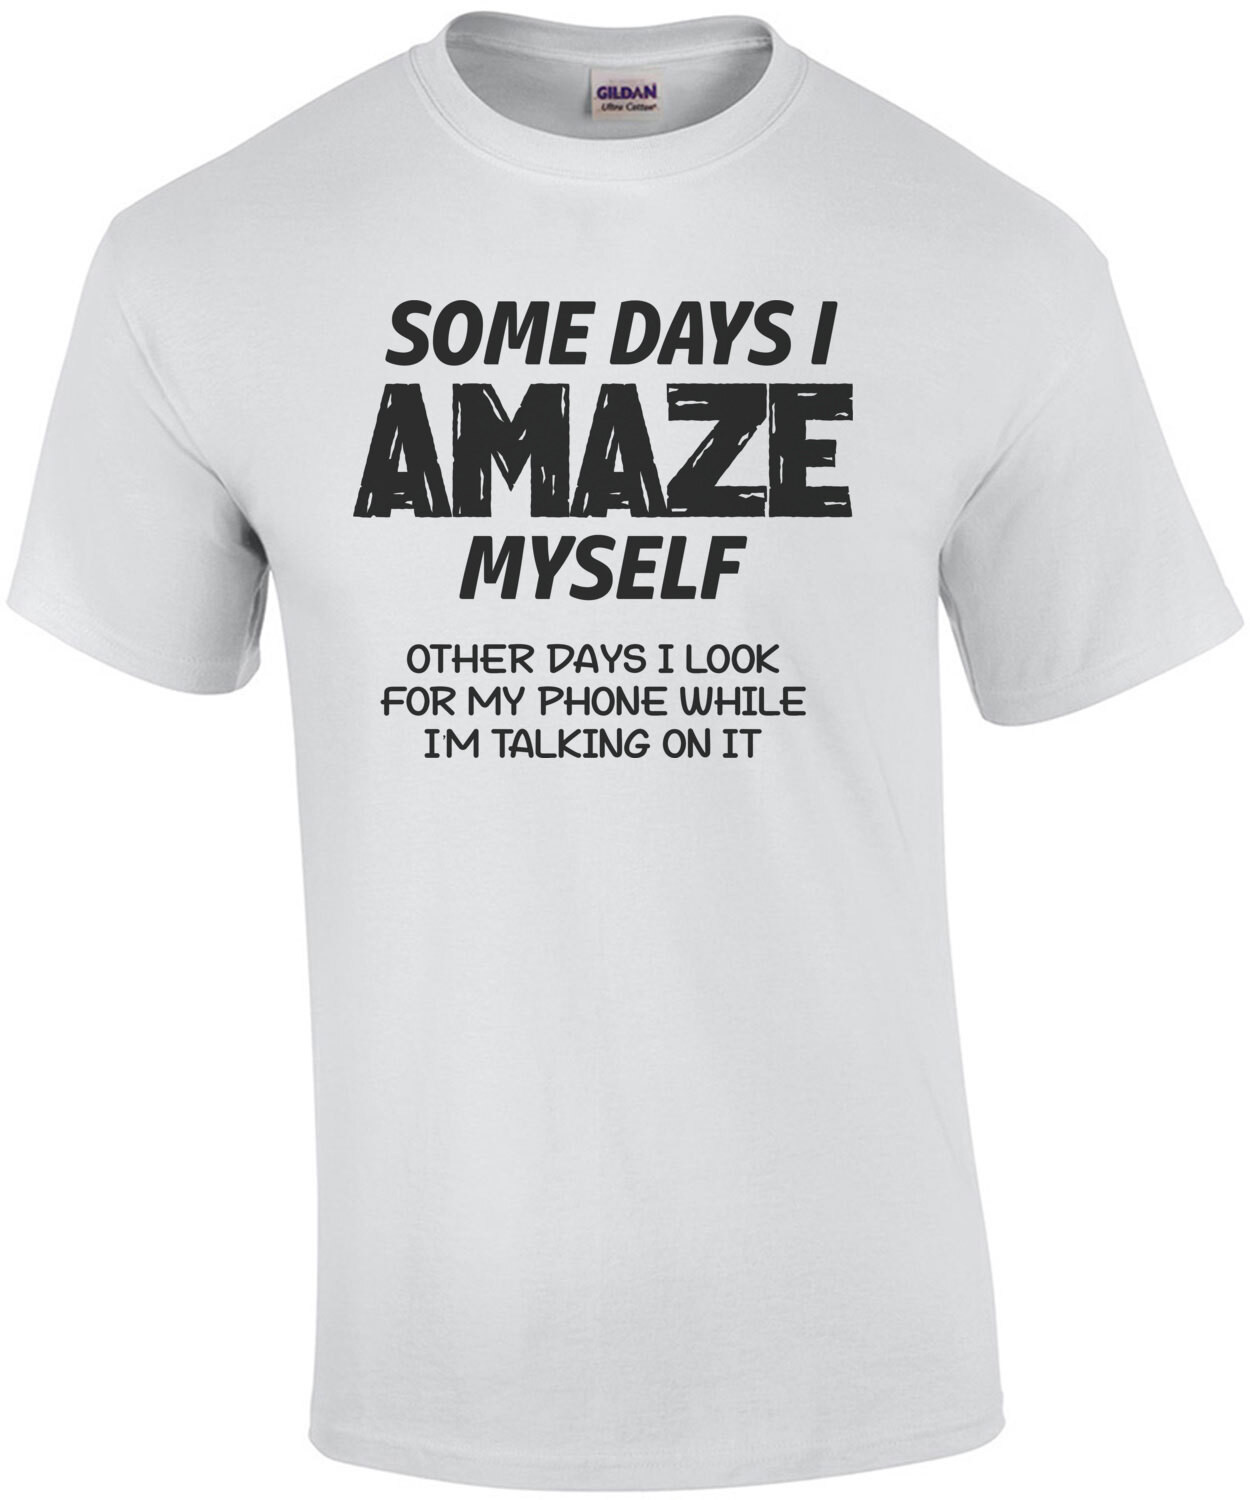 Some Days I Amaze Myself, Other Days I Look For My Phone While I'm Talking On It Funny Shirt